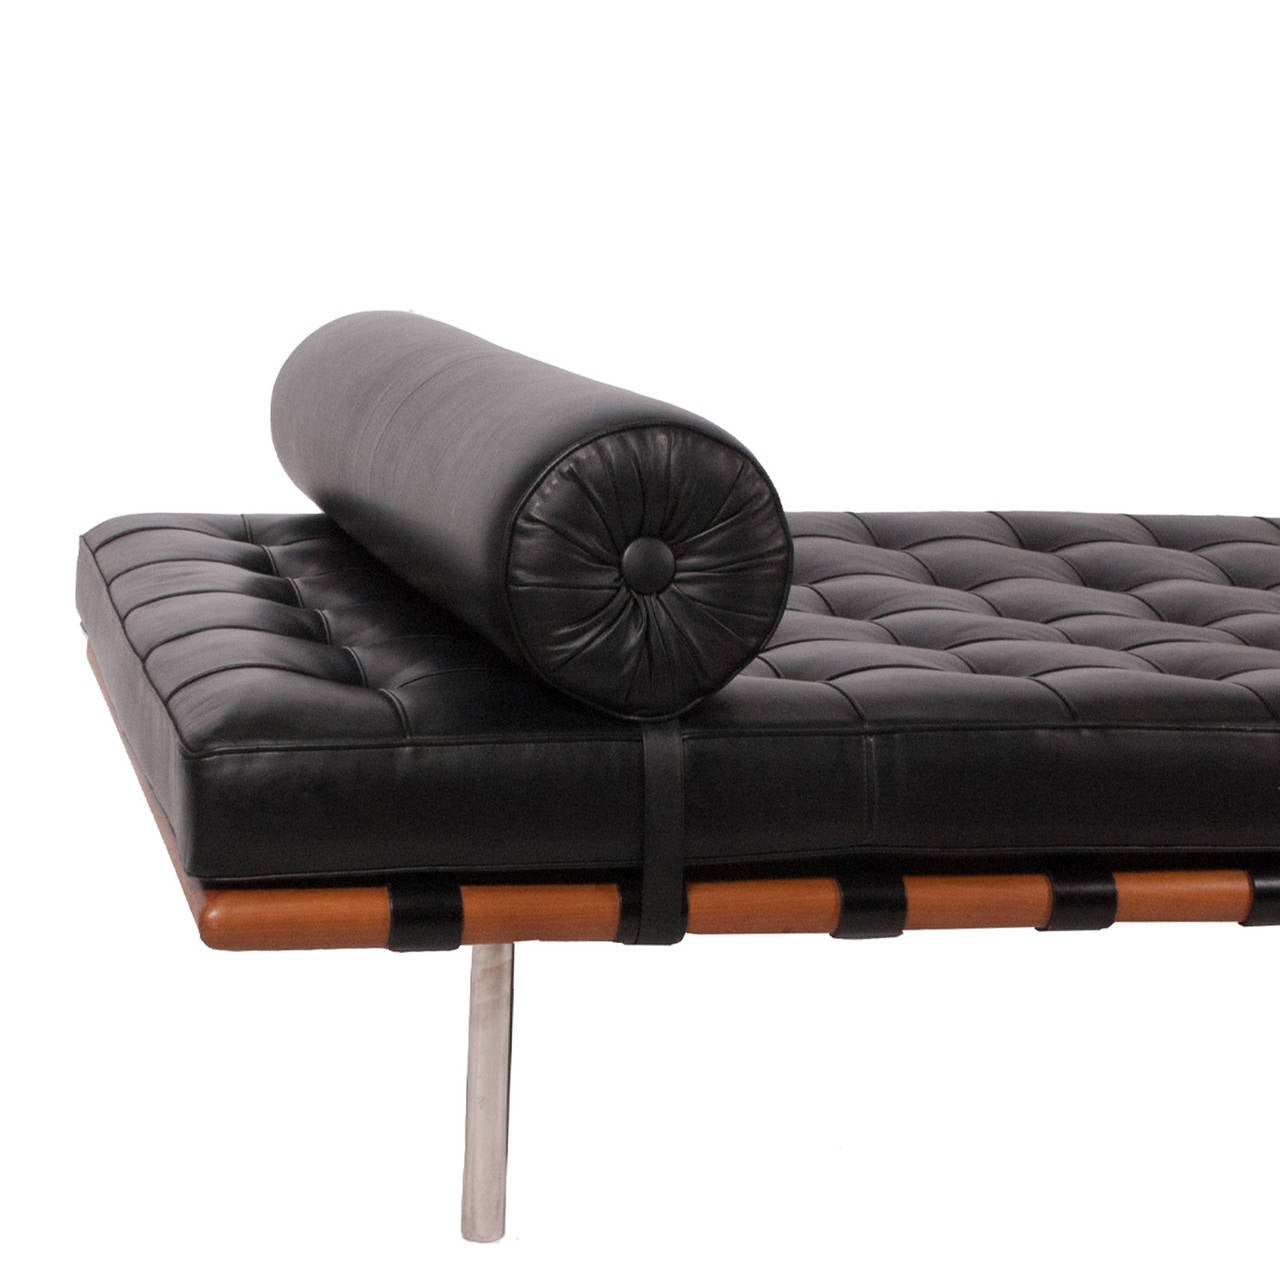 1980s barcelona daybed by mies van der rohe at 1stdibs. Black Bedroom Furniture Sets. Home Design Ideas